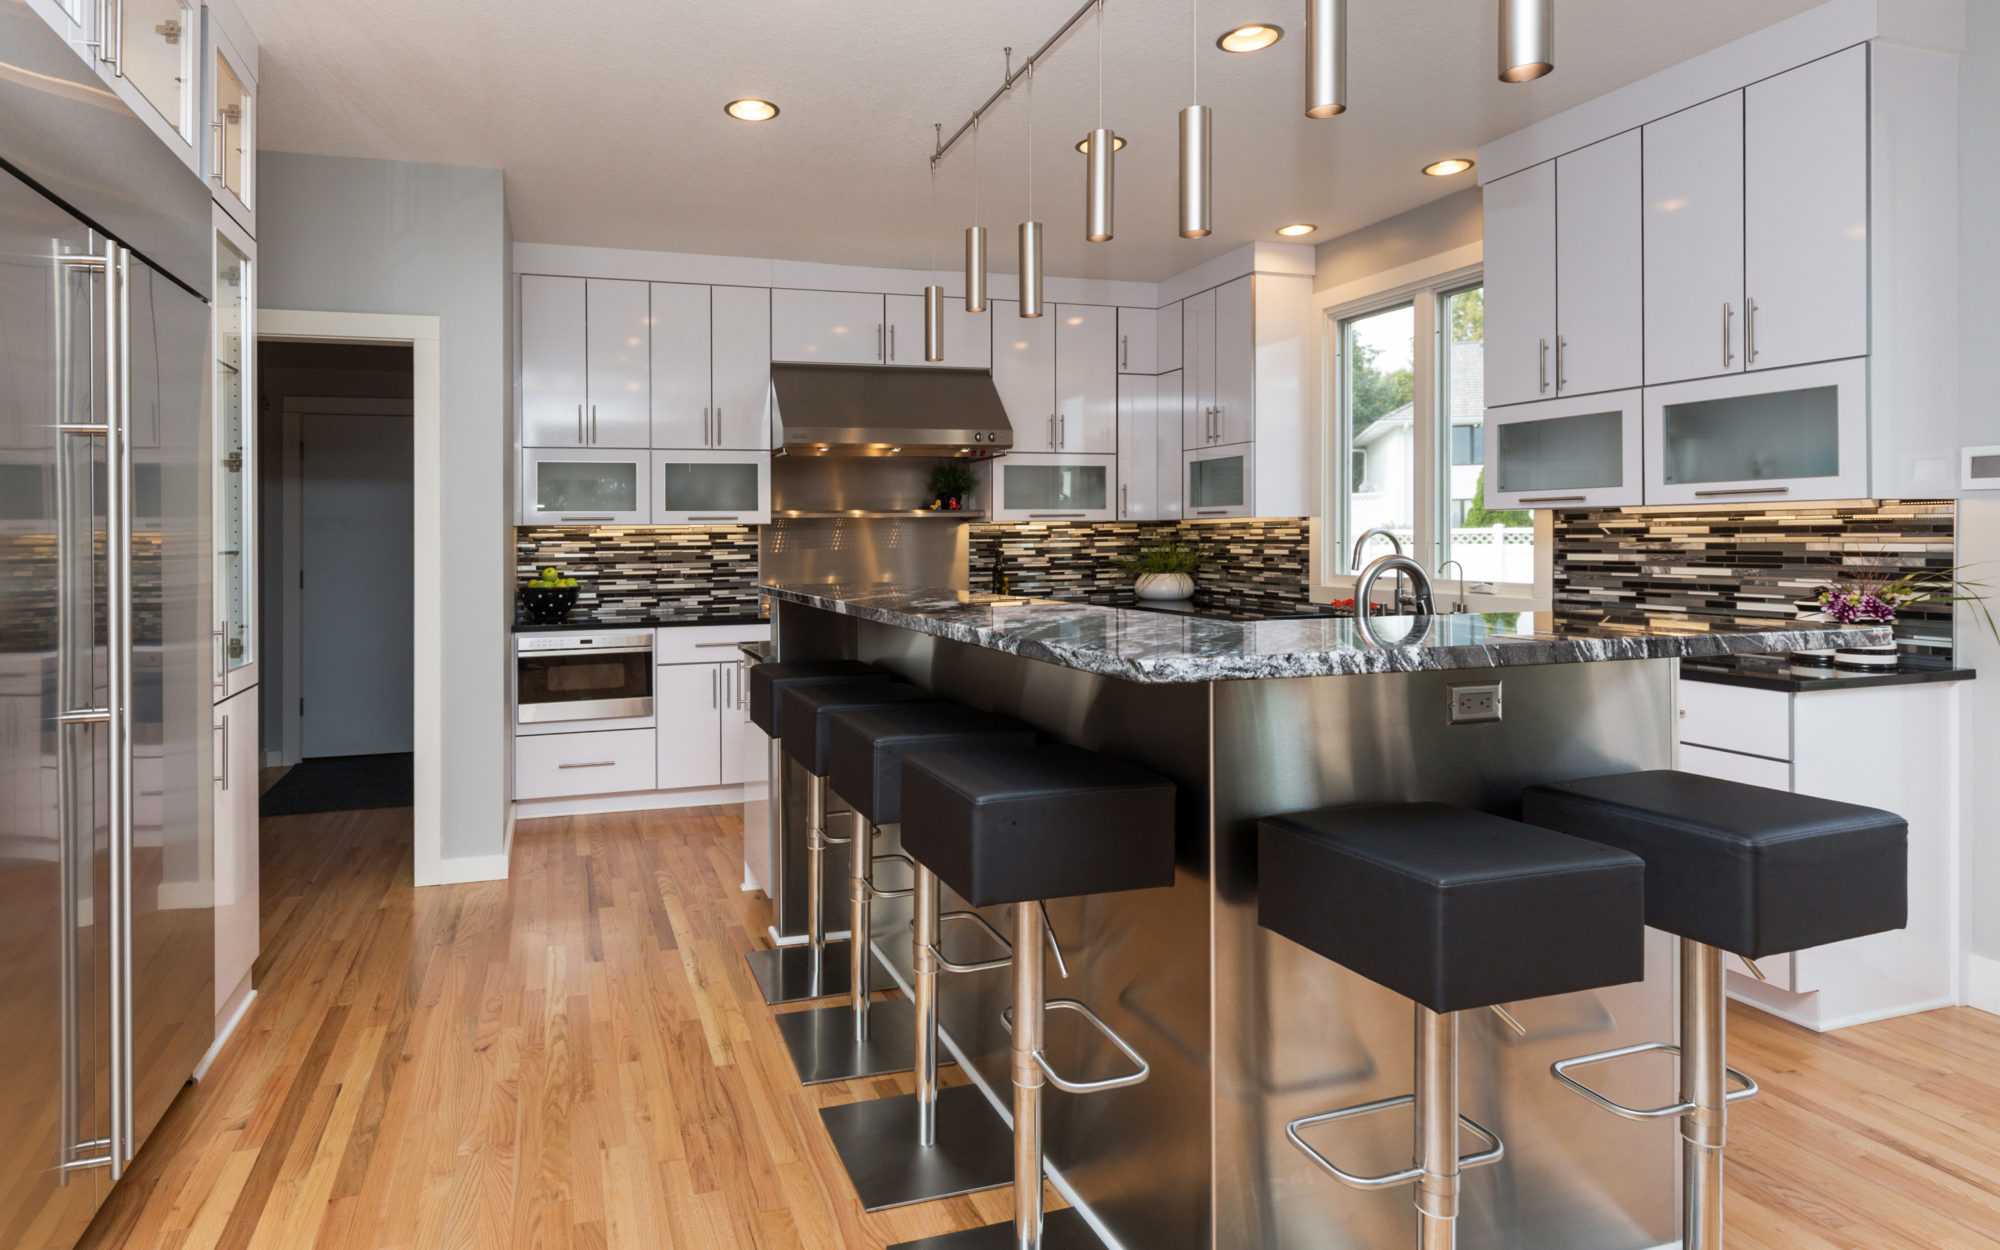 Featured Des Moines Kitchen Remodels. View All Kitchens